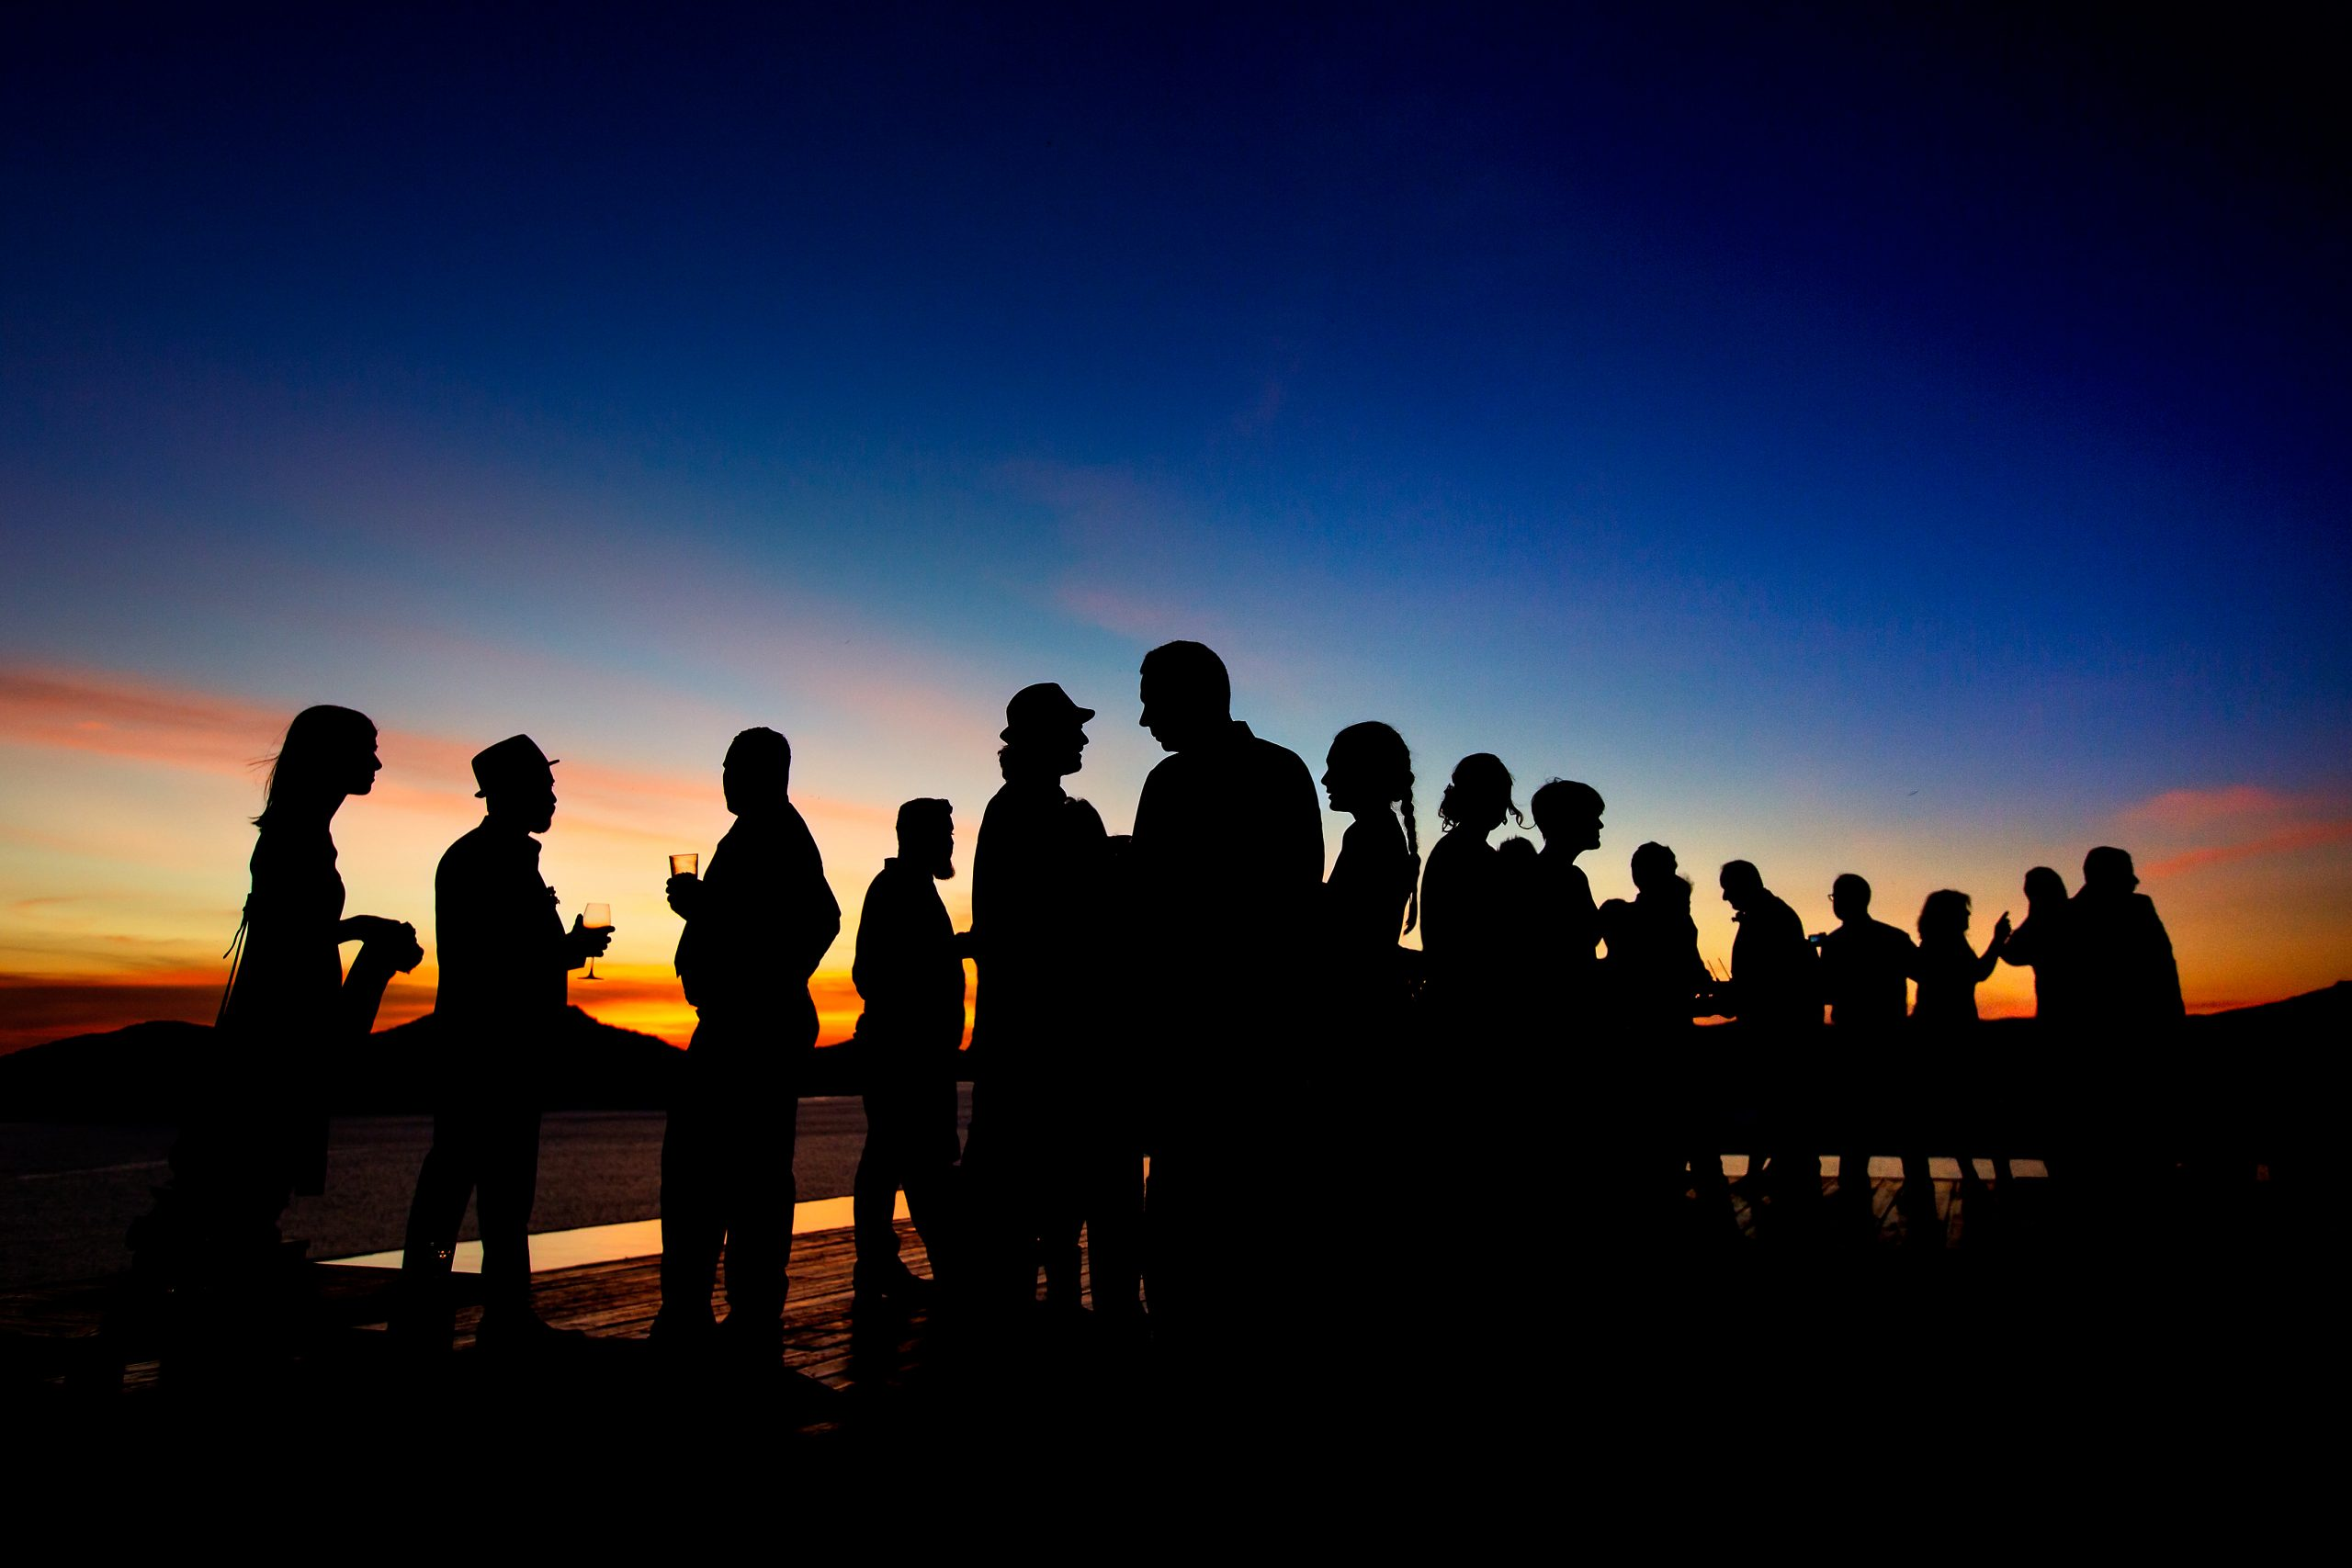 Silhouette of a group of people enjoying drinks in front of a sunset